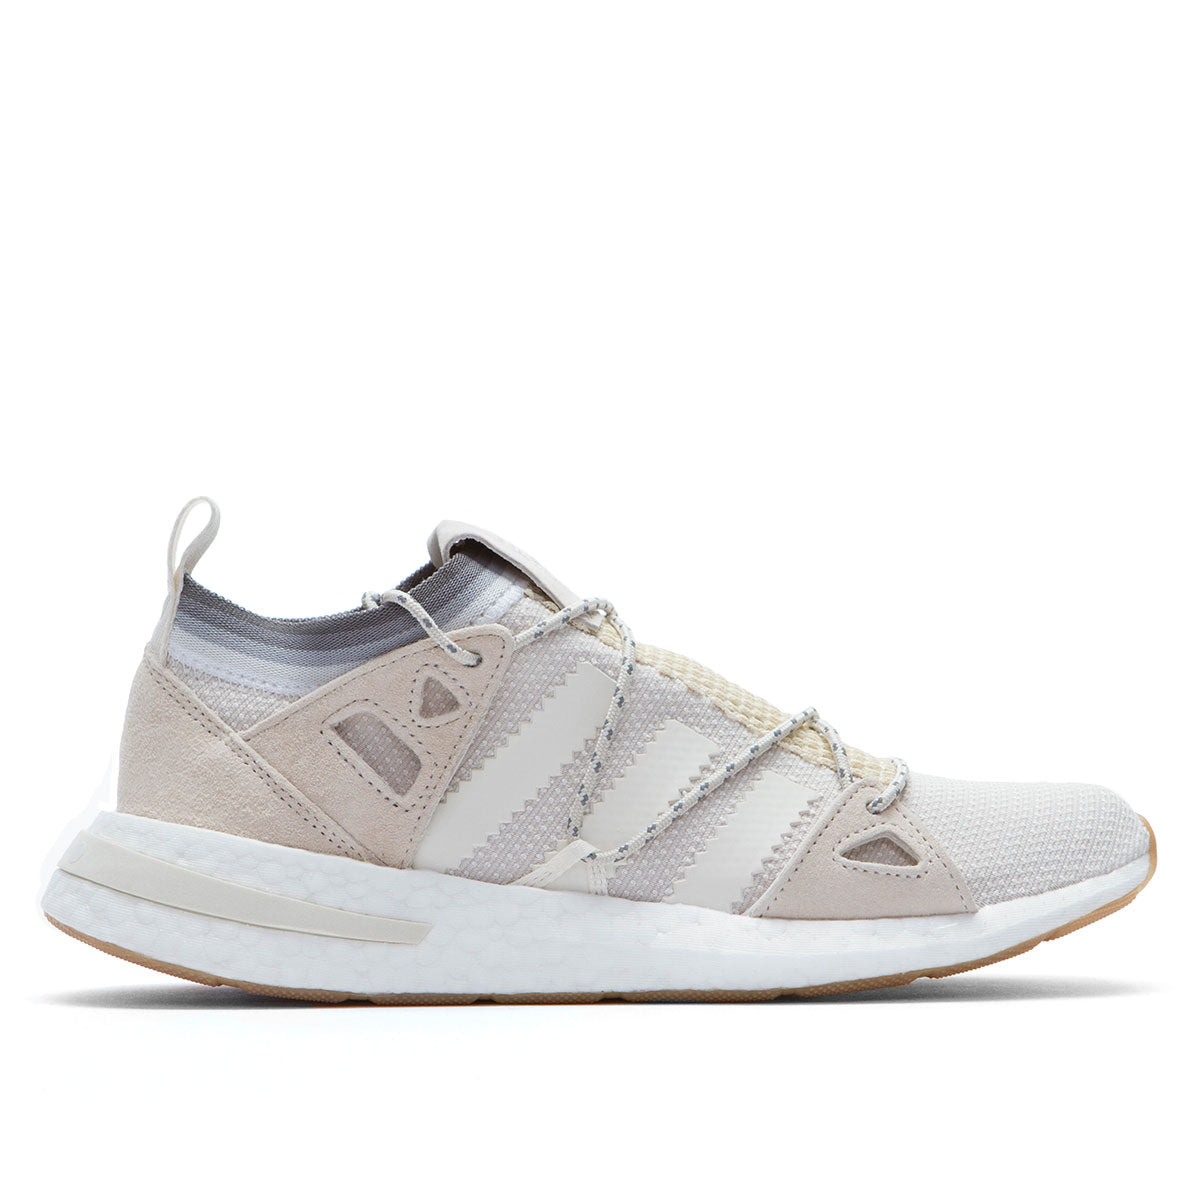 Adidas Originals Arkyn Womens Shoe White